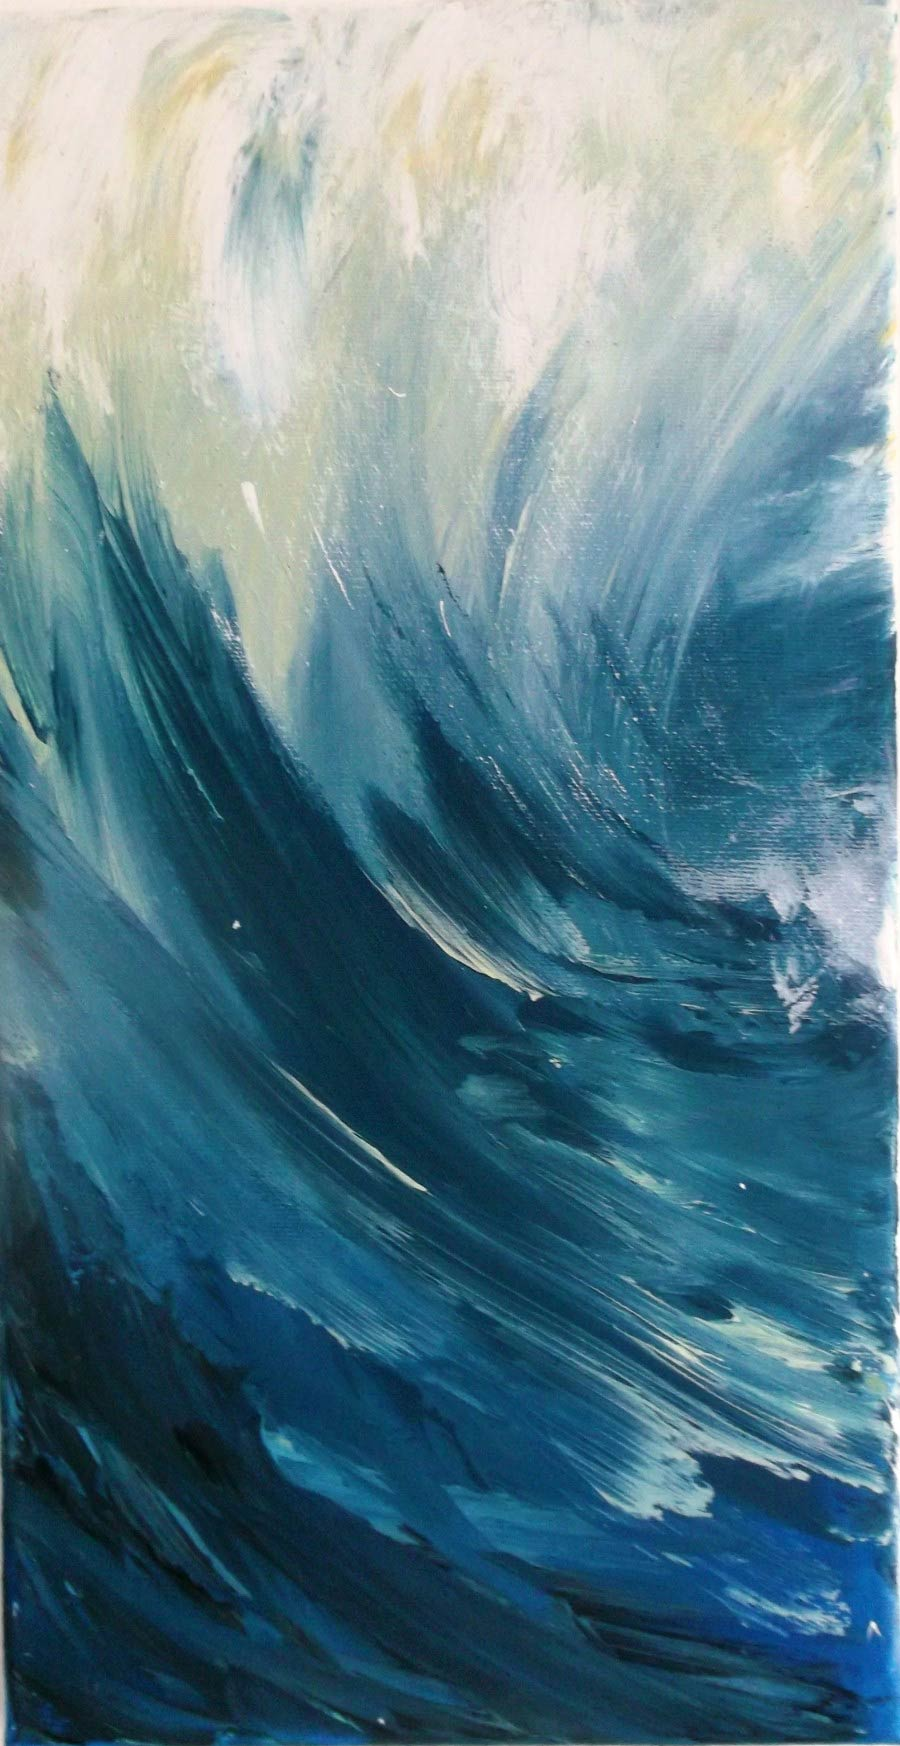 Seascape Artwork by Laurence Chandler